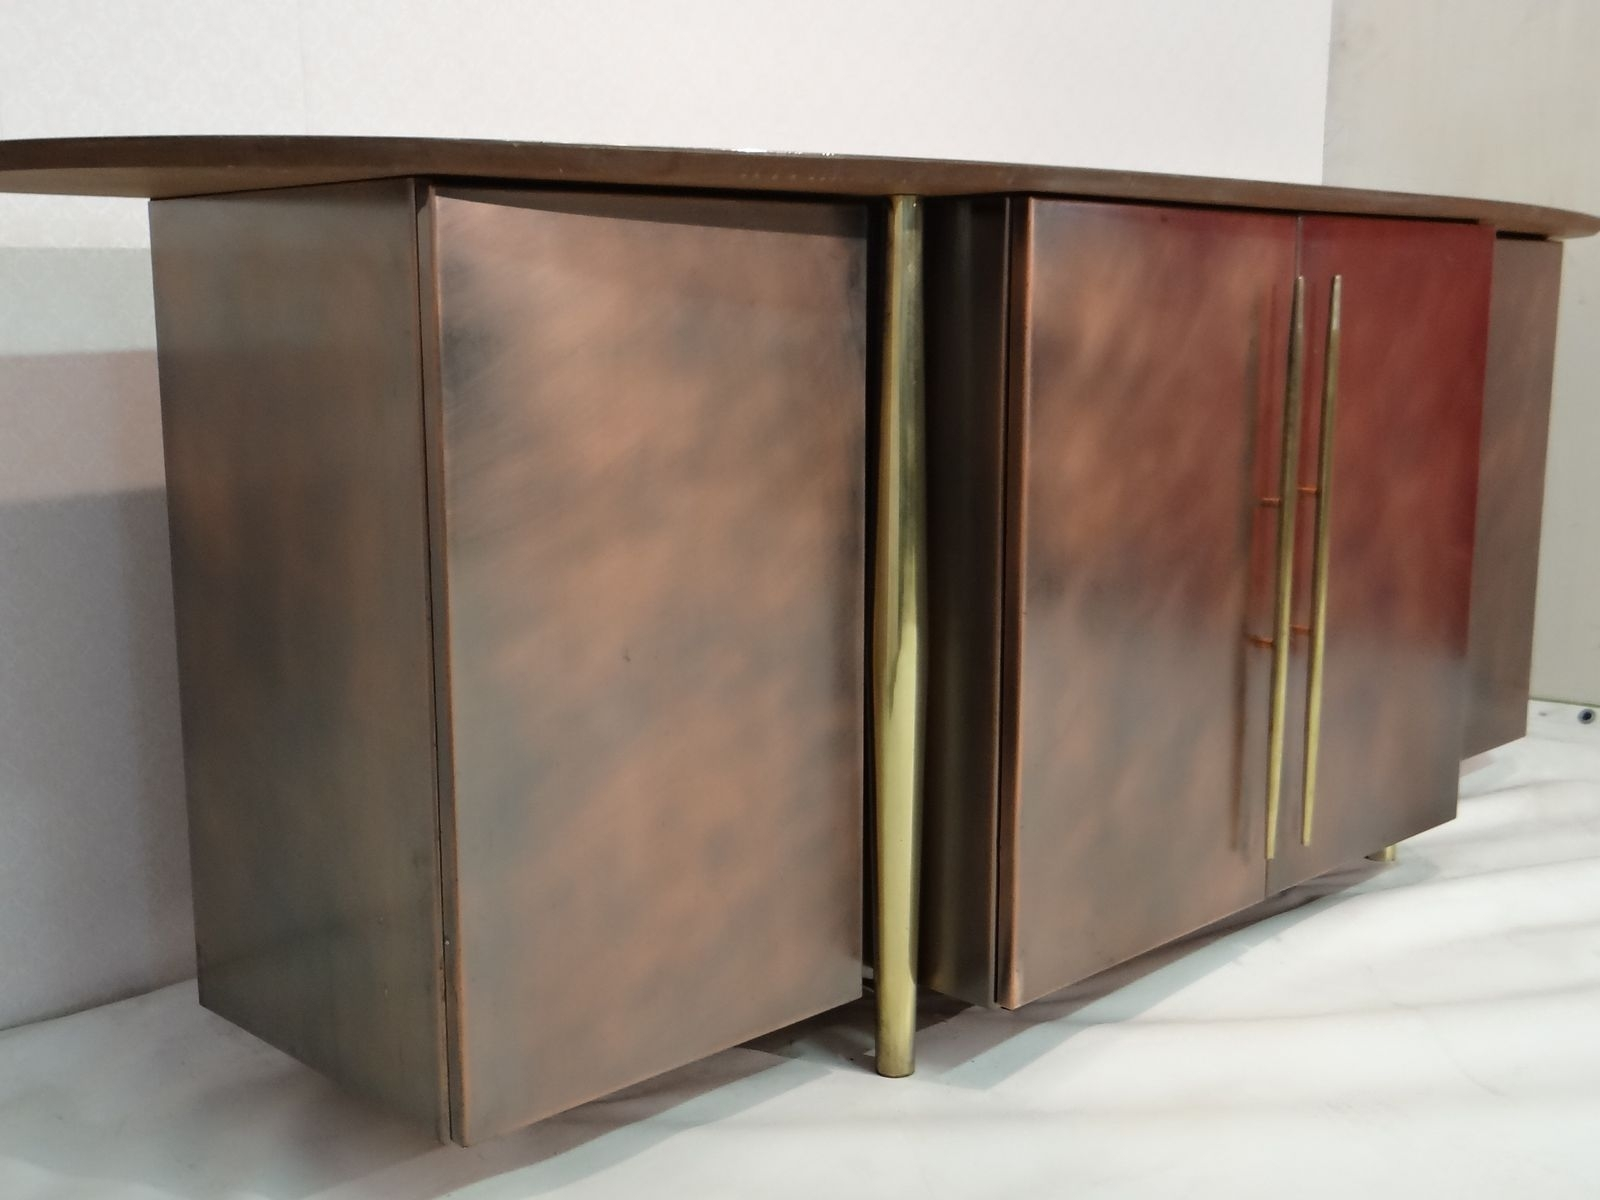 Inspiration about Vintage Brass Sideboard From Belgo Chrom For Sale At Pamono With Regard To Most Recently Released Aged Brass Sideboards (#15 of 20)